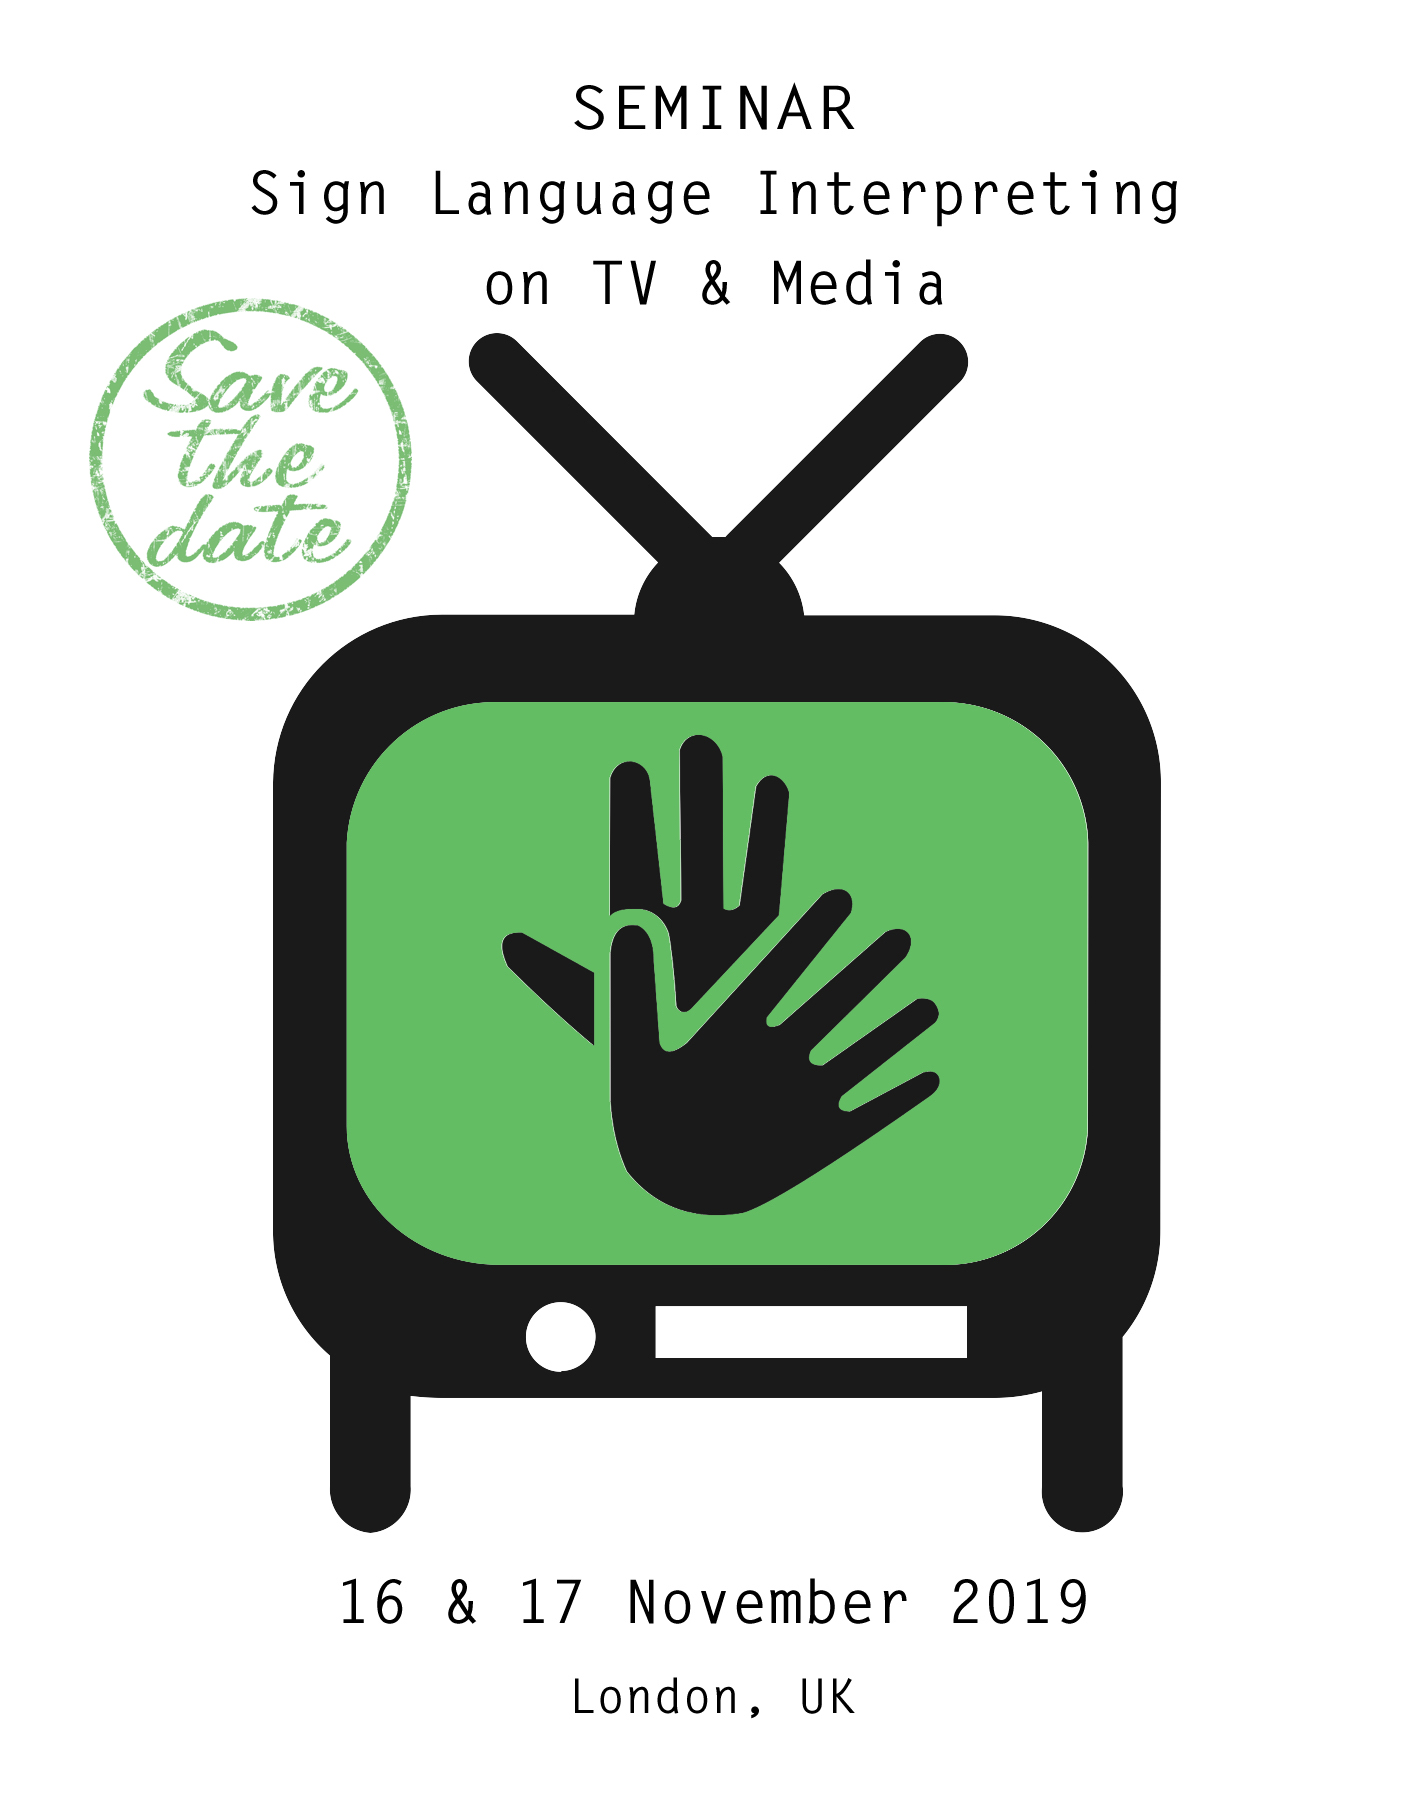 Save the date GREEN - Logo TV interpreting seminar with text - white background kopie.jpg